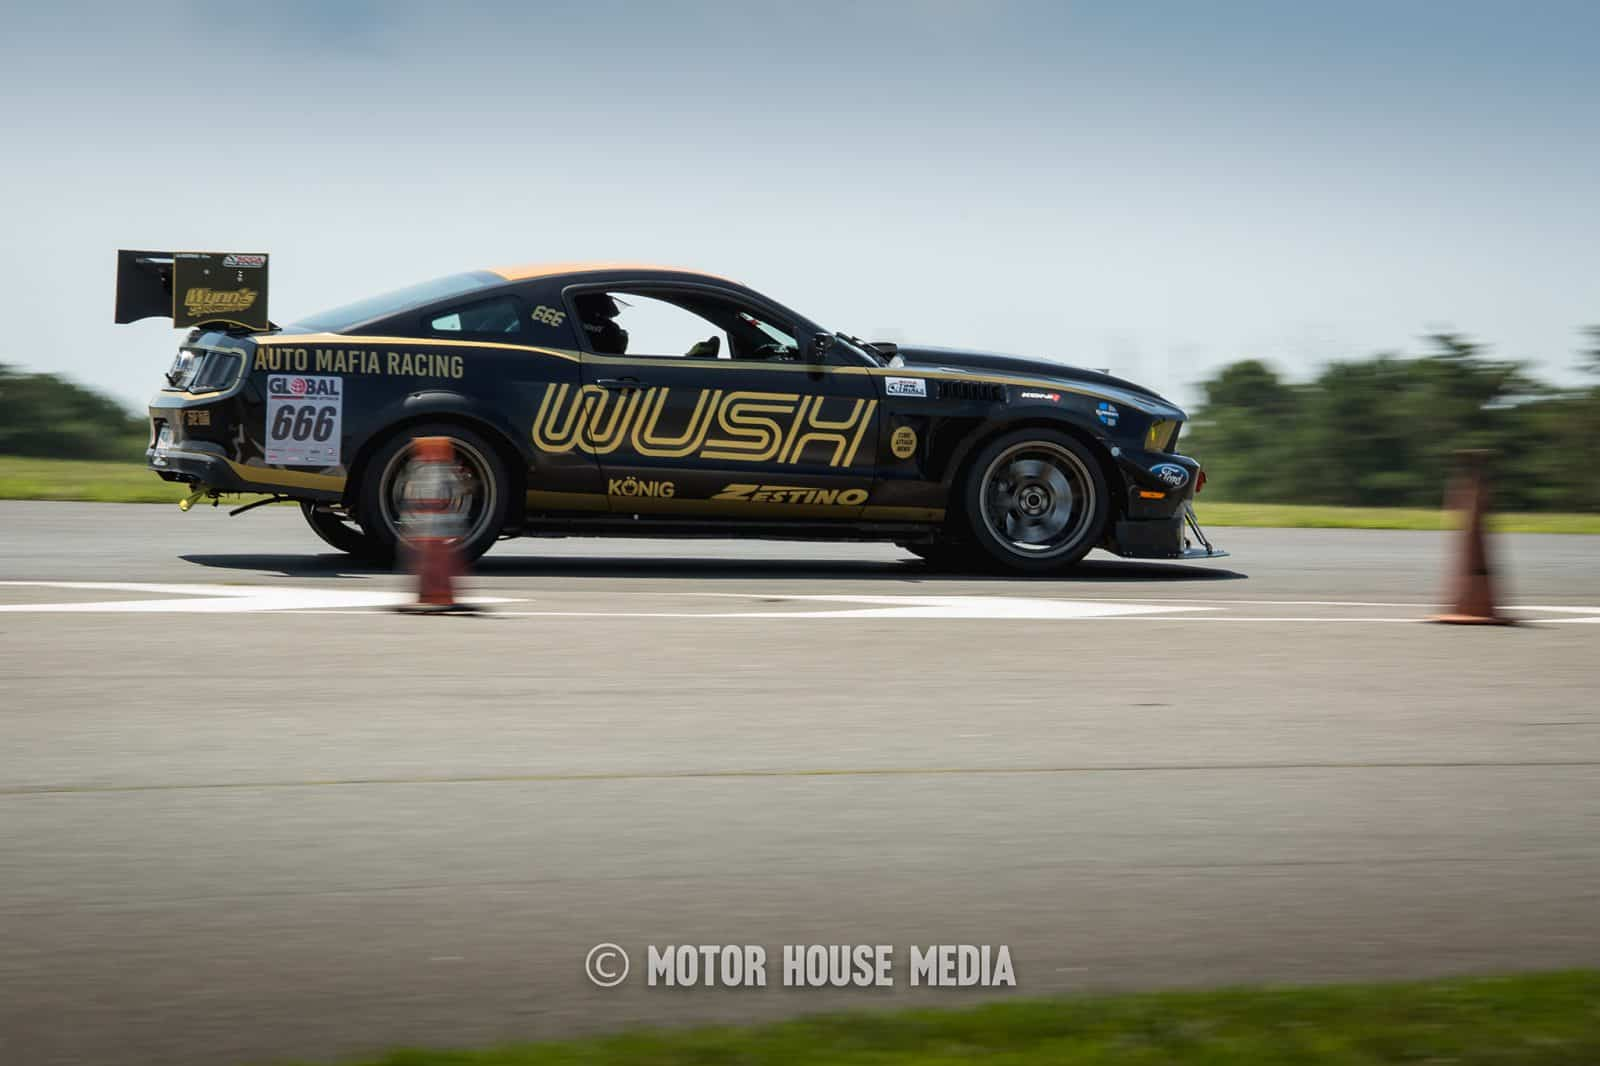 The Wush Mustang in Global Time Attack